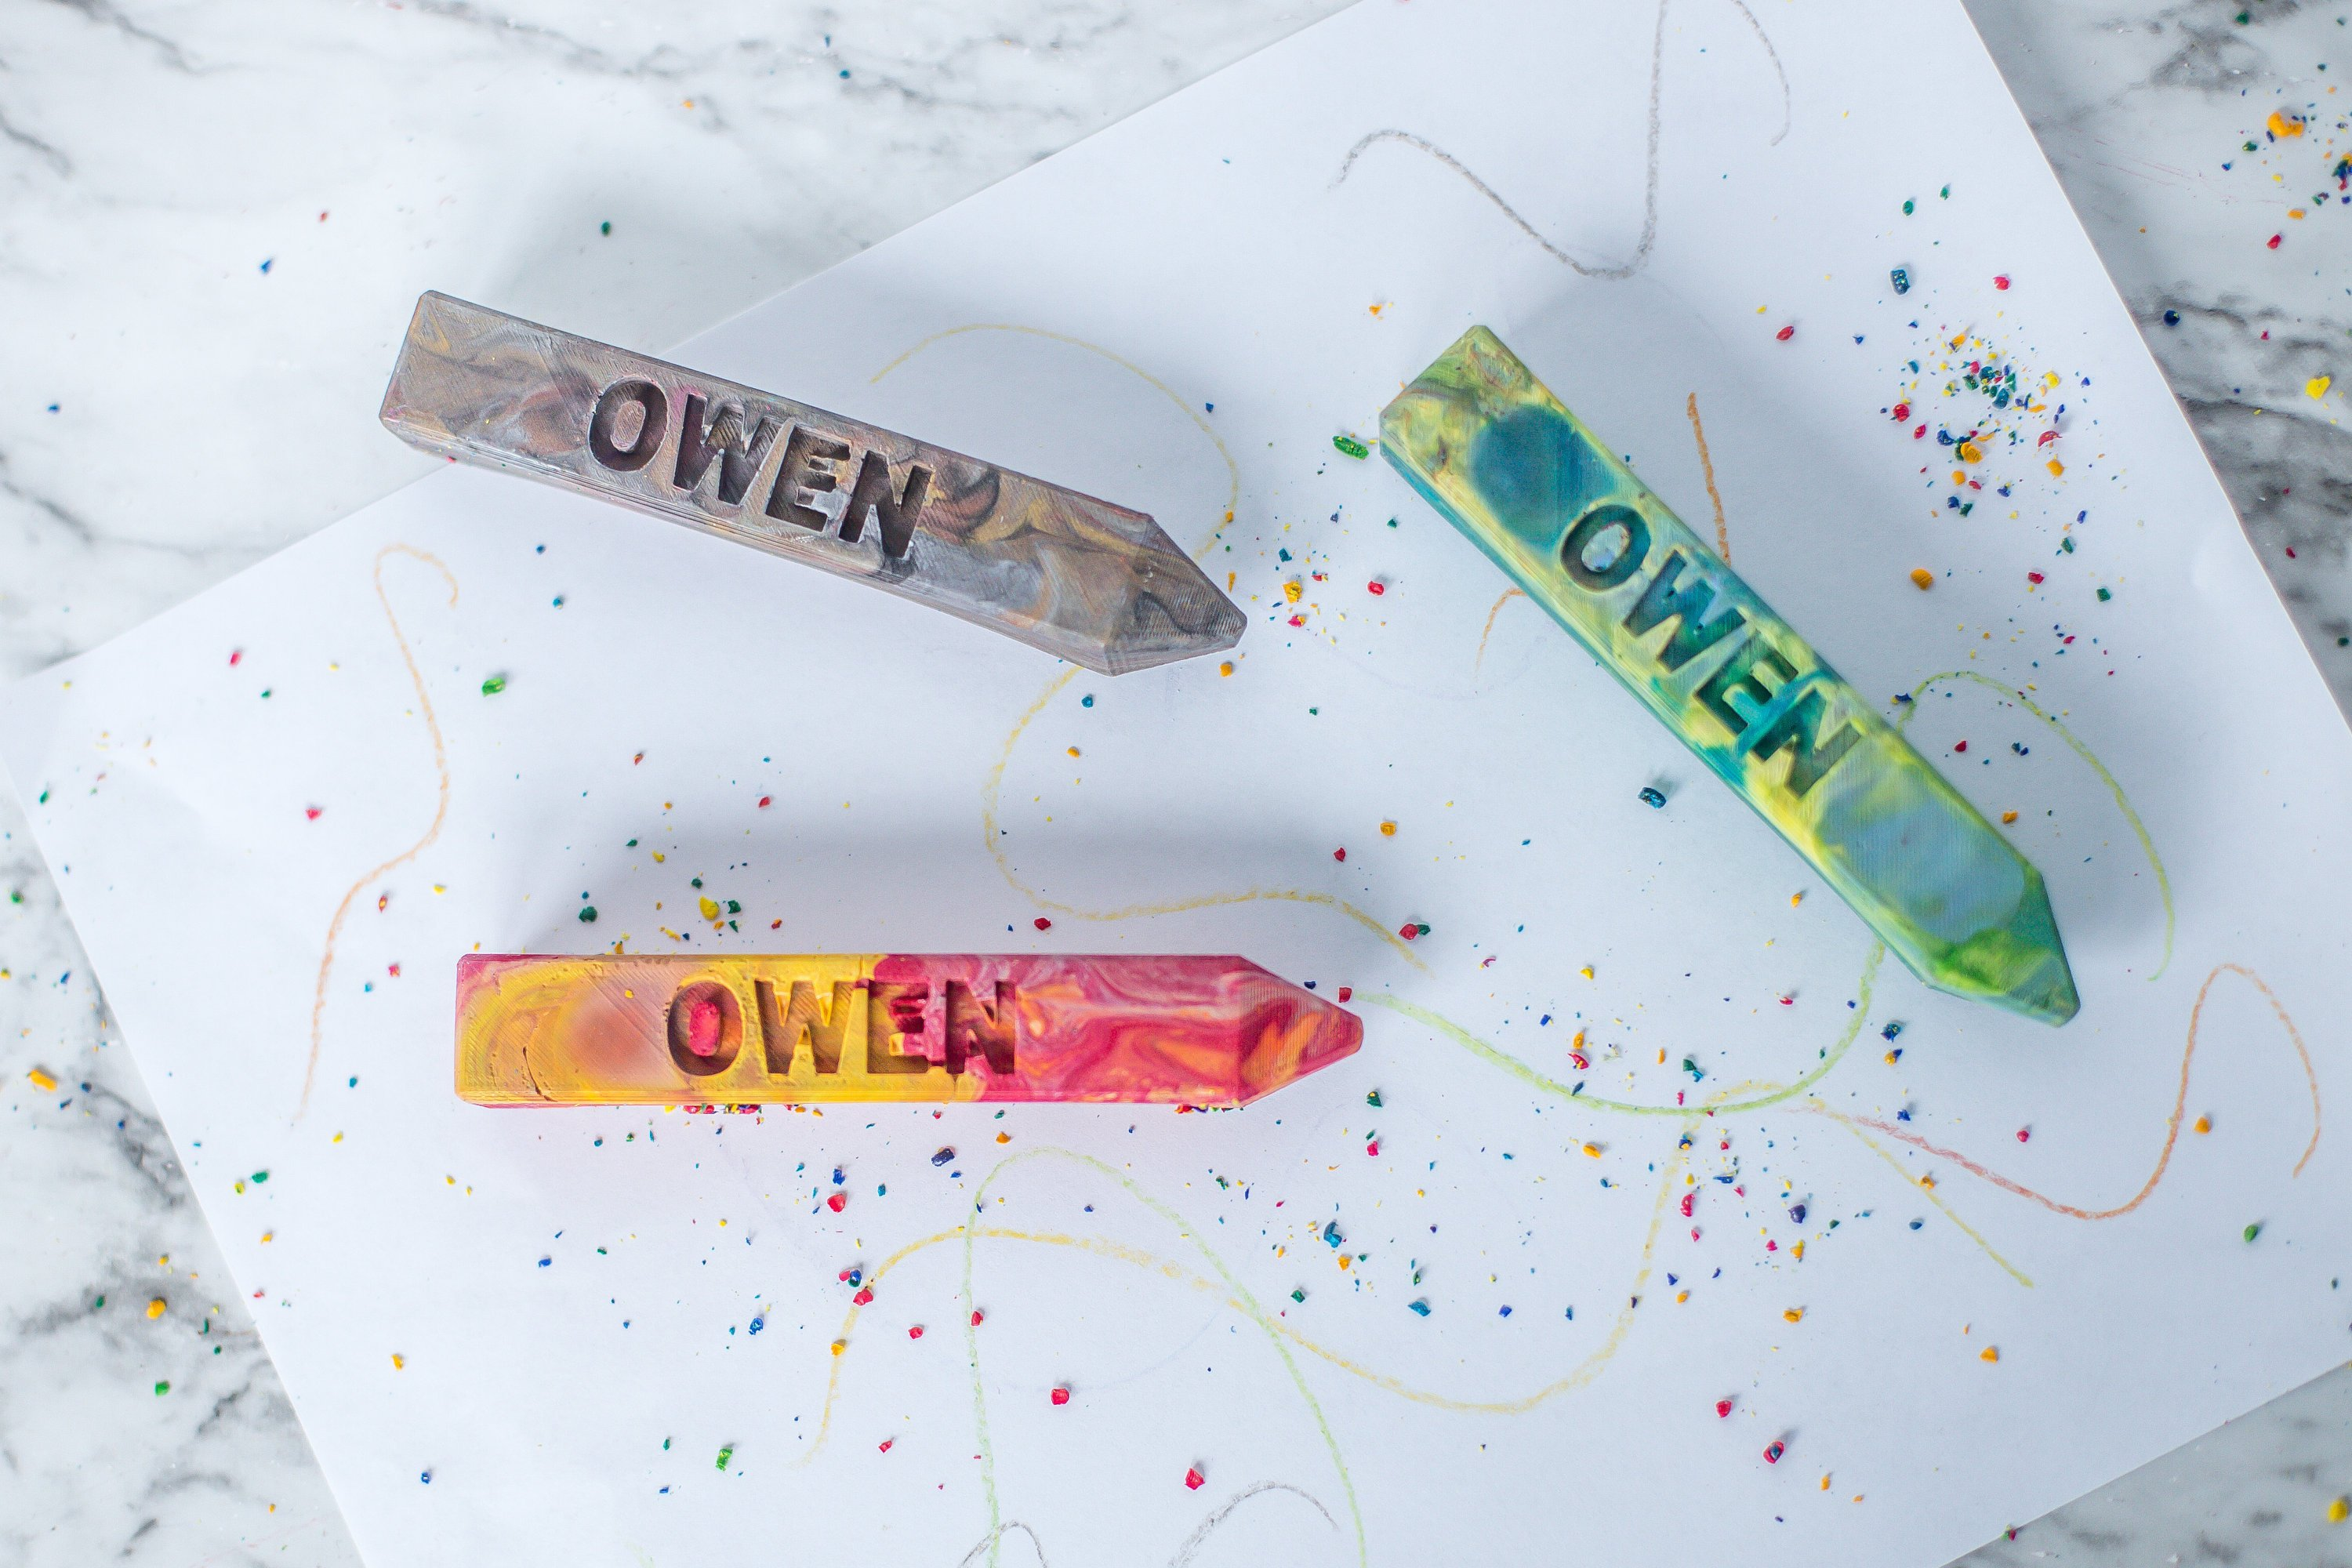 Creative personalized gifts: Custom handmade crayon set with a child's name at Art2theExtreme